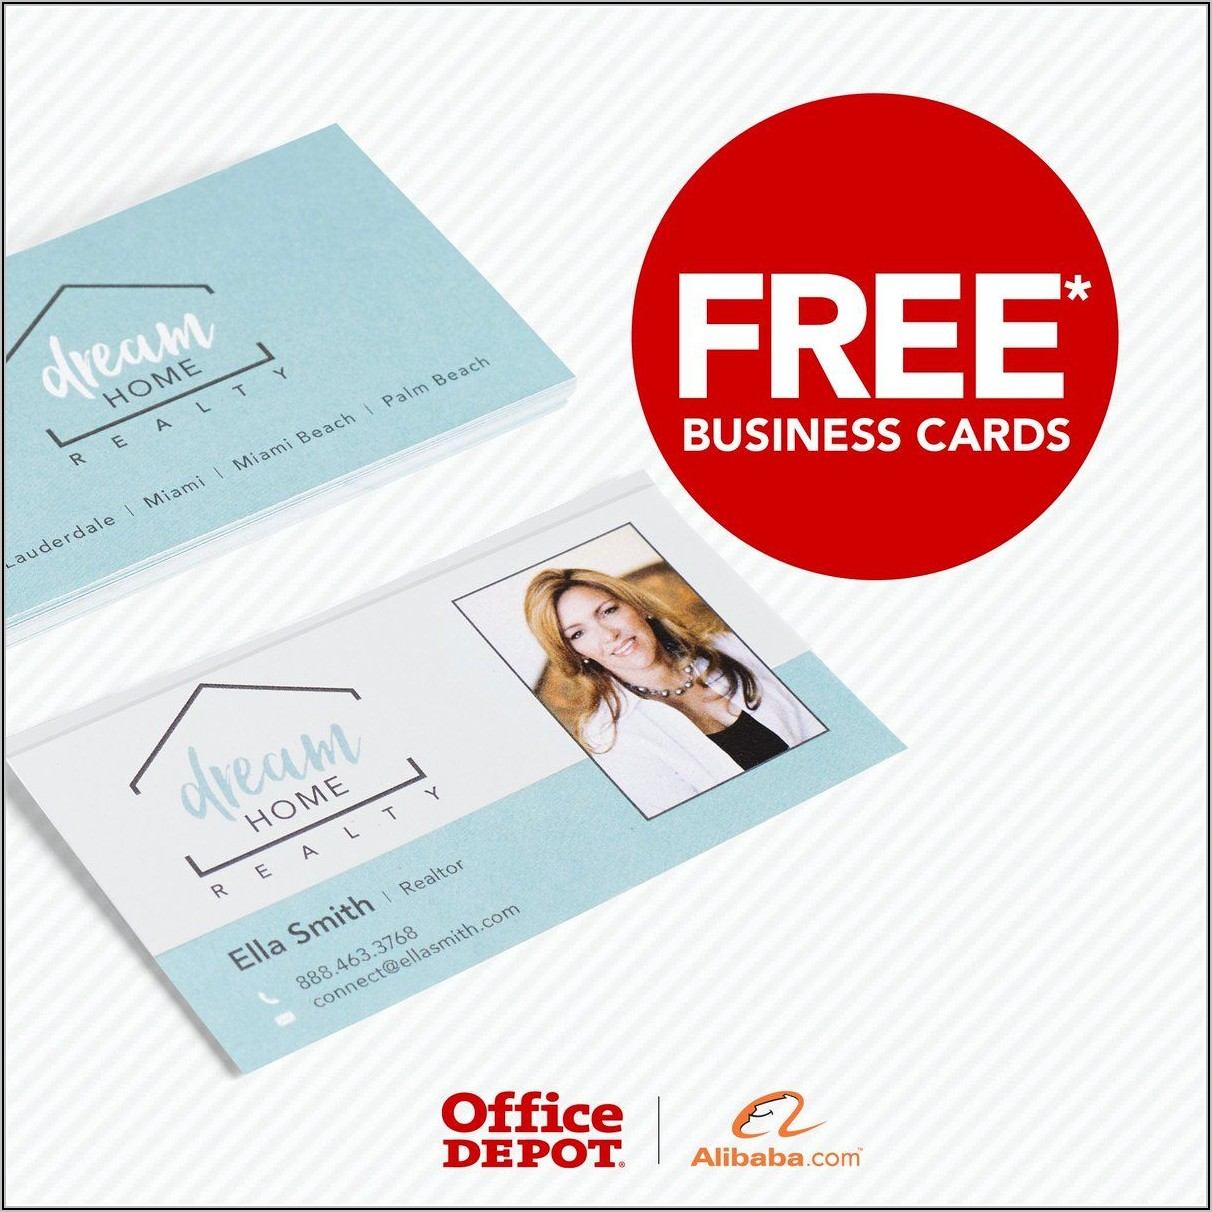 Office Depot Business Cards Coupon Code